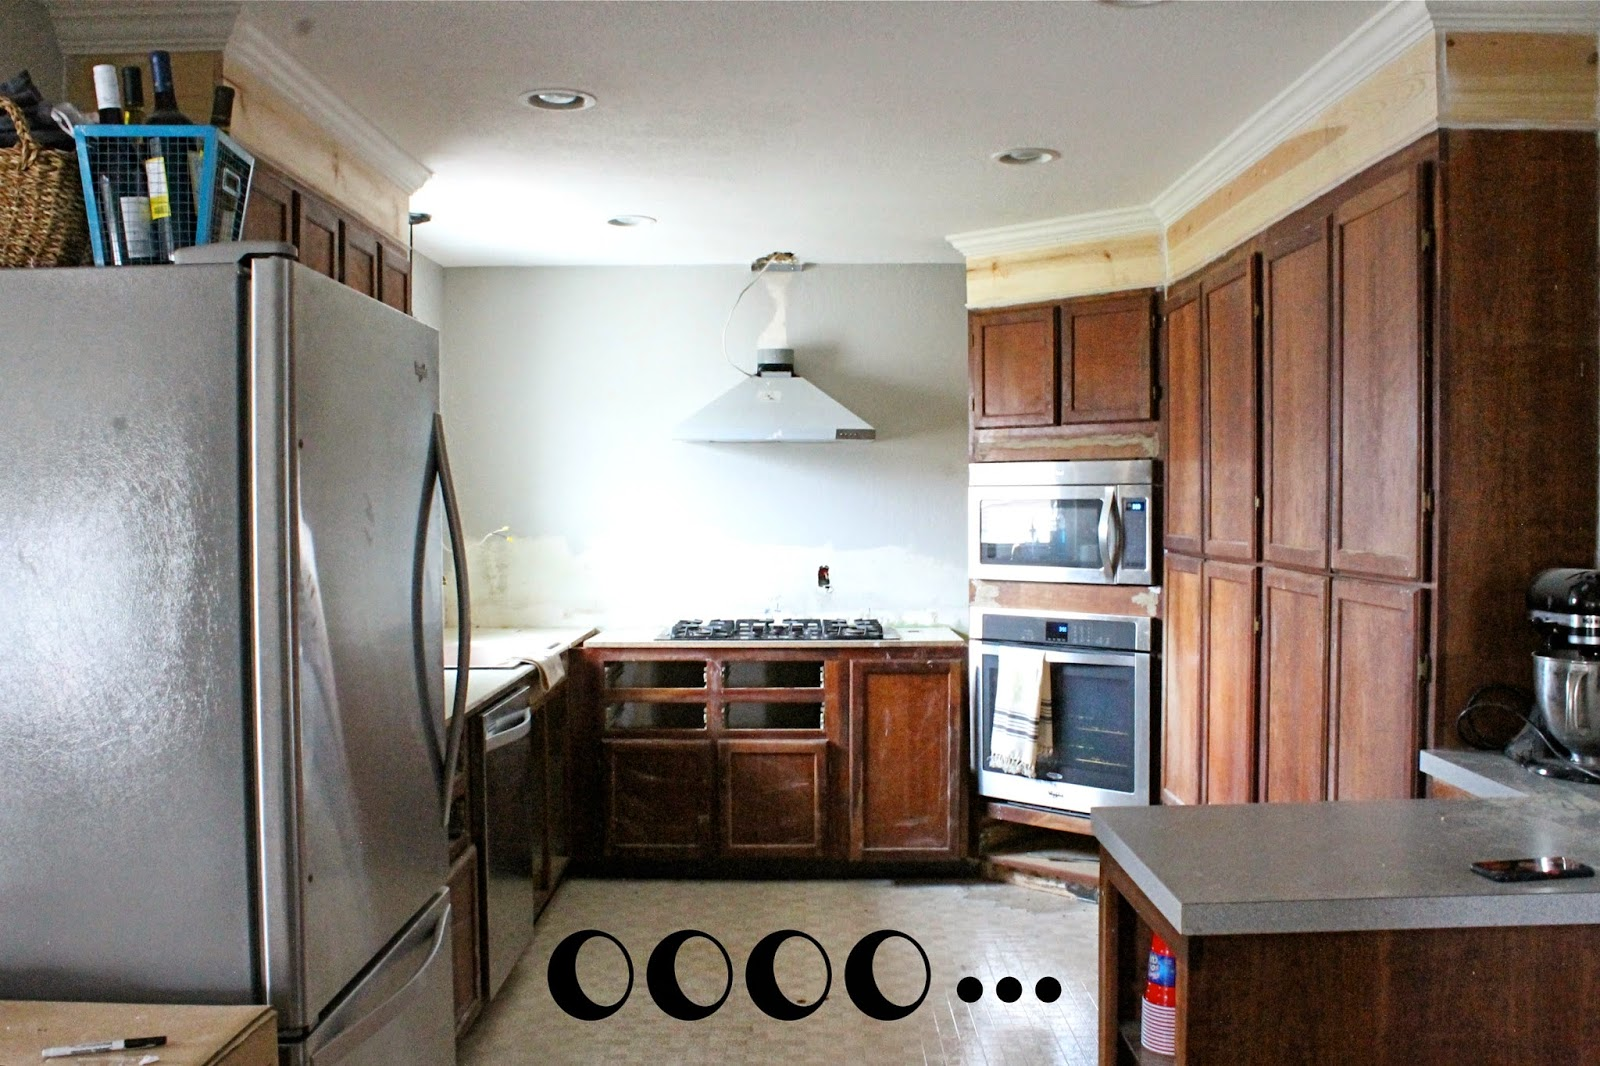 Wonderfully Made: Extending Kitchen Cabinets to the Ceiling